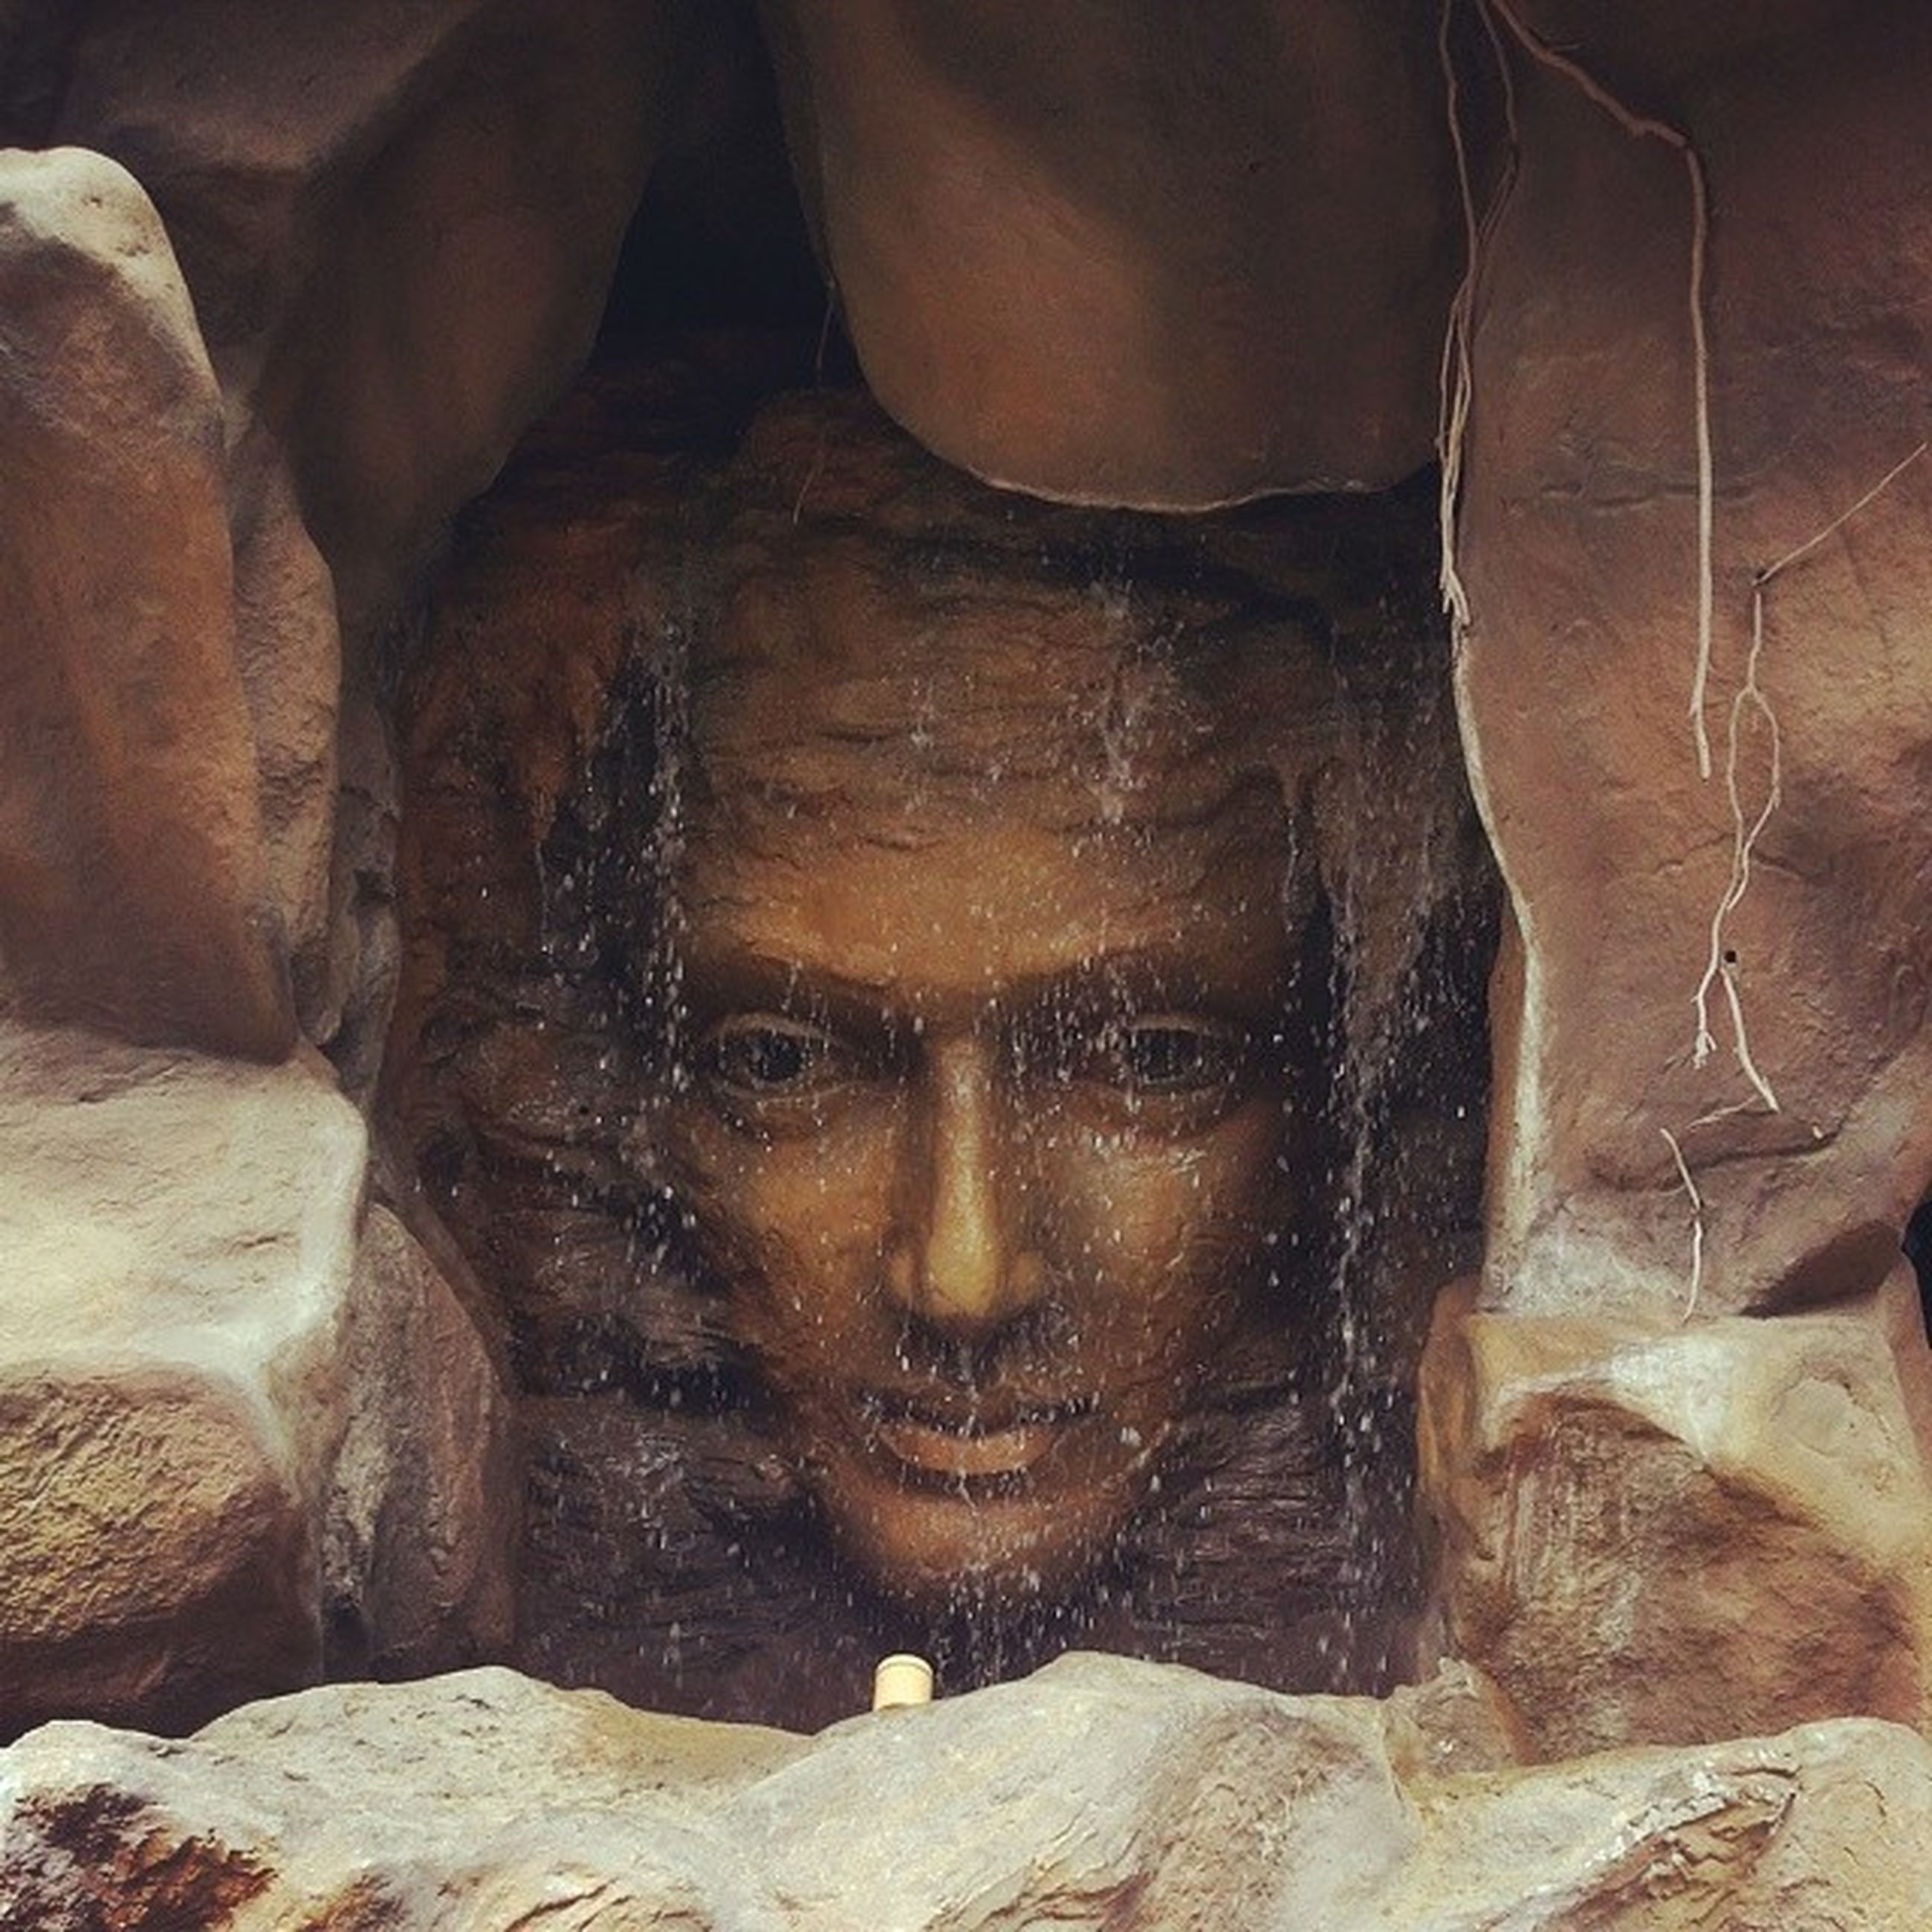 art, creativity, art and craft, young adult, close-up, human representation, indoors, lifestyles, front view, wall - building feature, statue, human face, leisure activity, cave, day, rock - object, sculpture